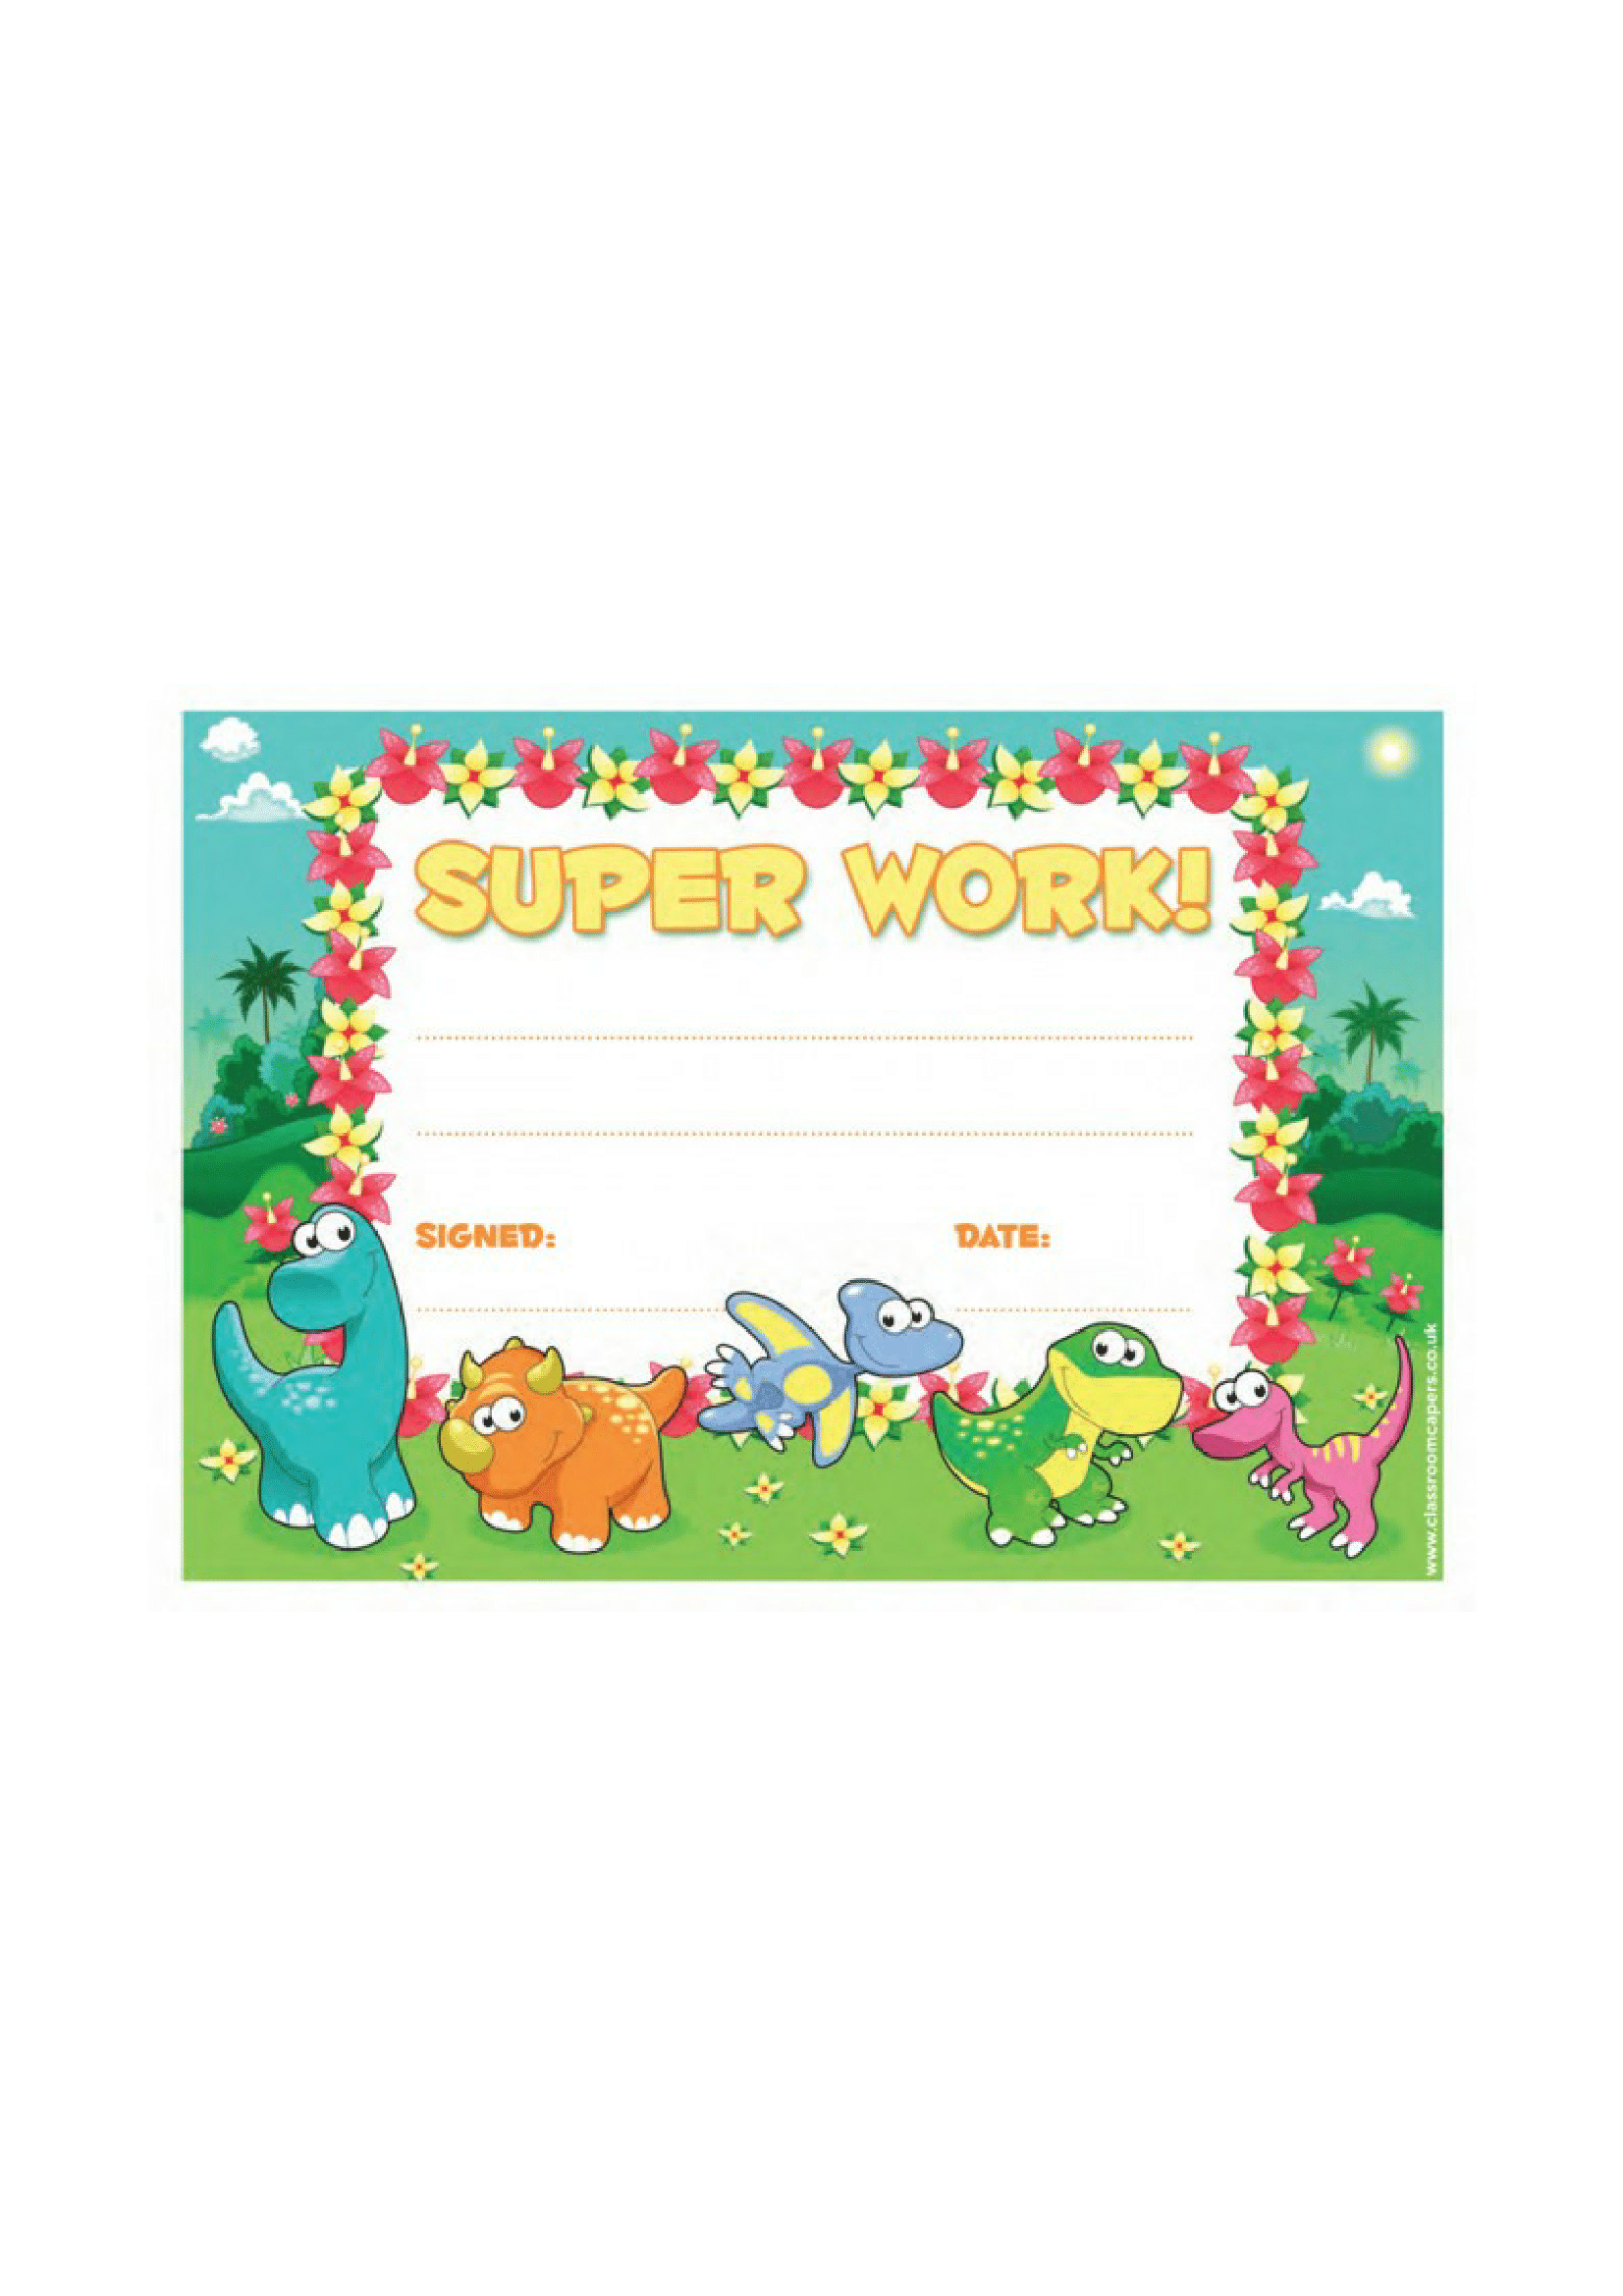 Student Super Work Certificate – FREE Download